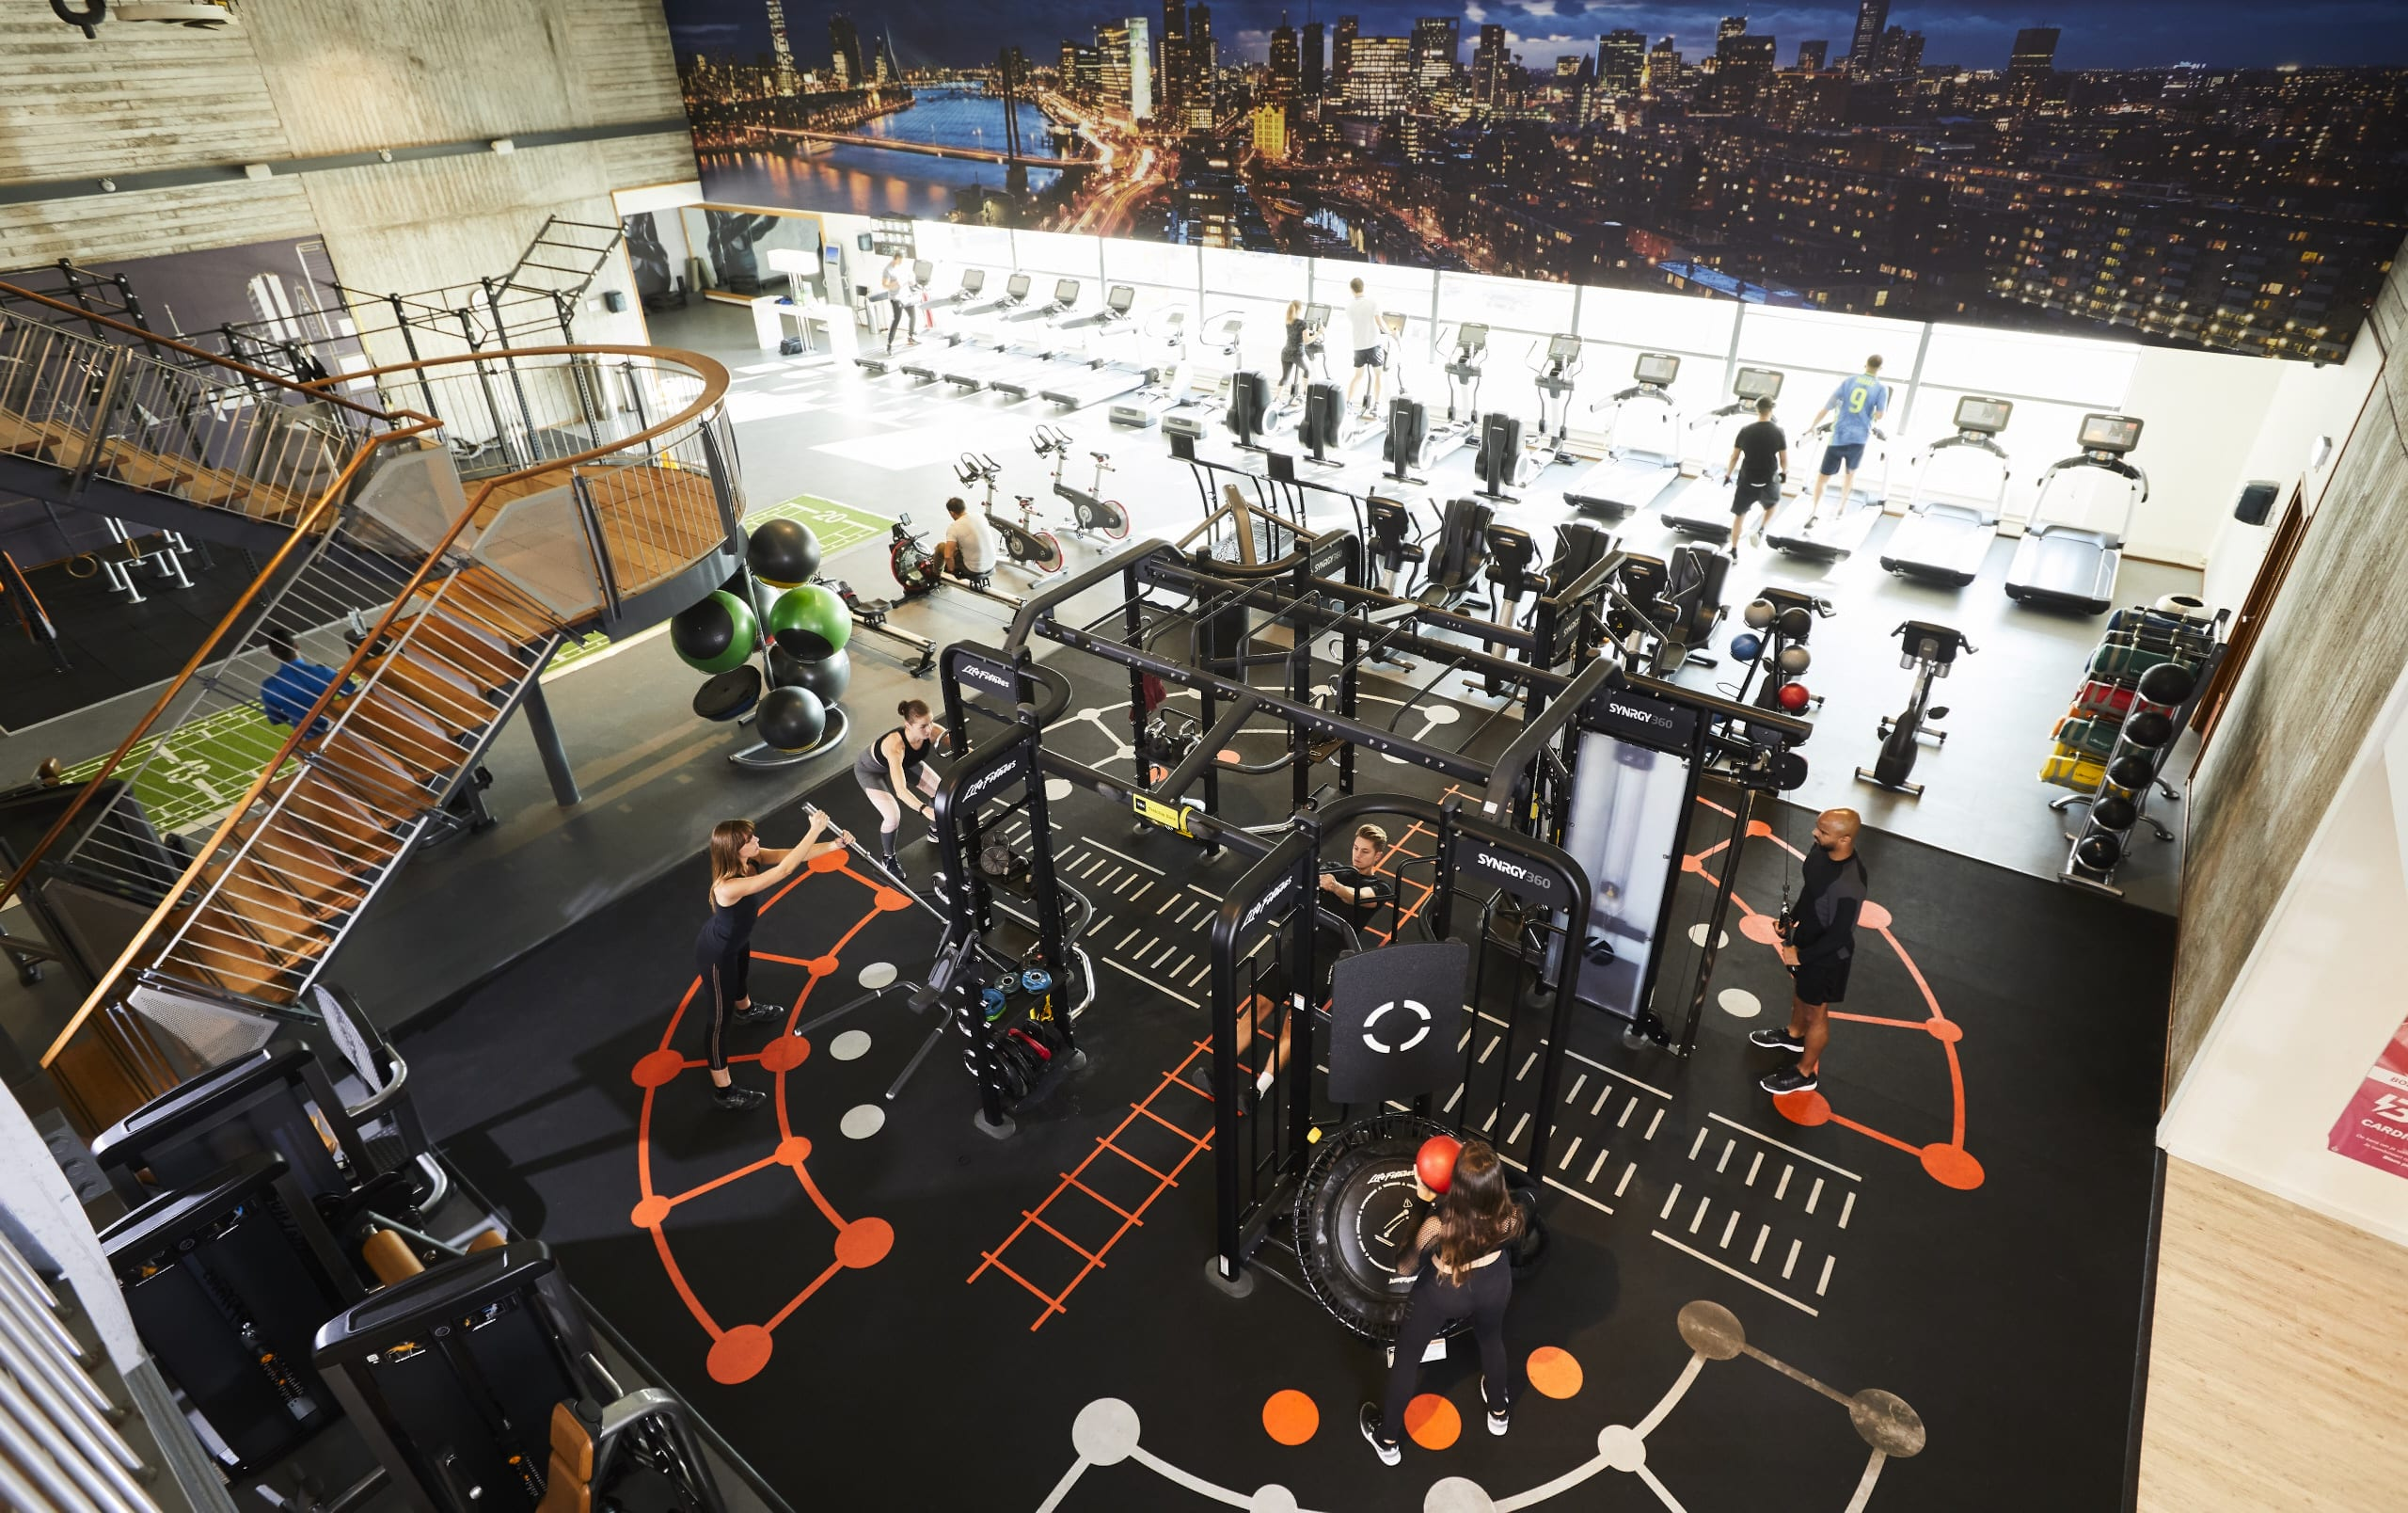 Image of the Synrgy area at David Lloyd Rotterdam